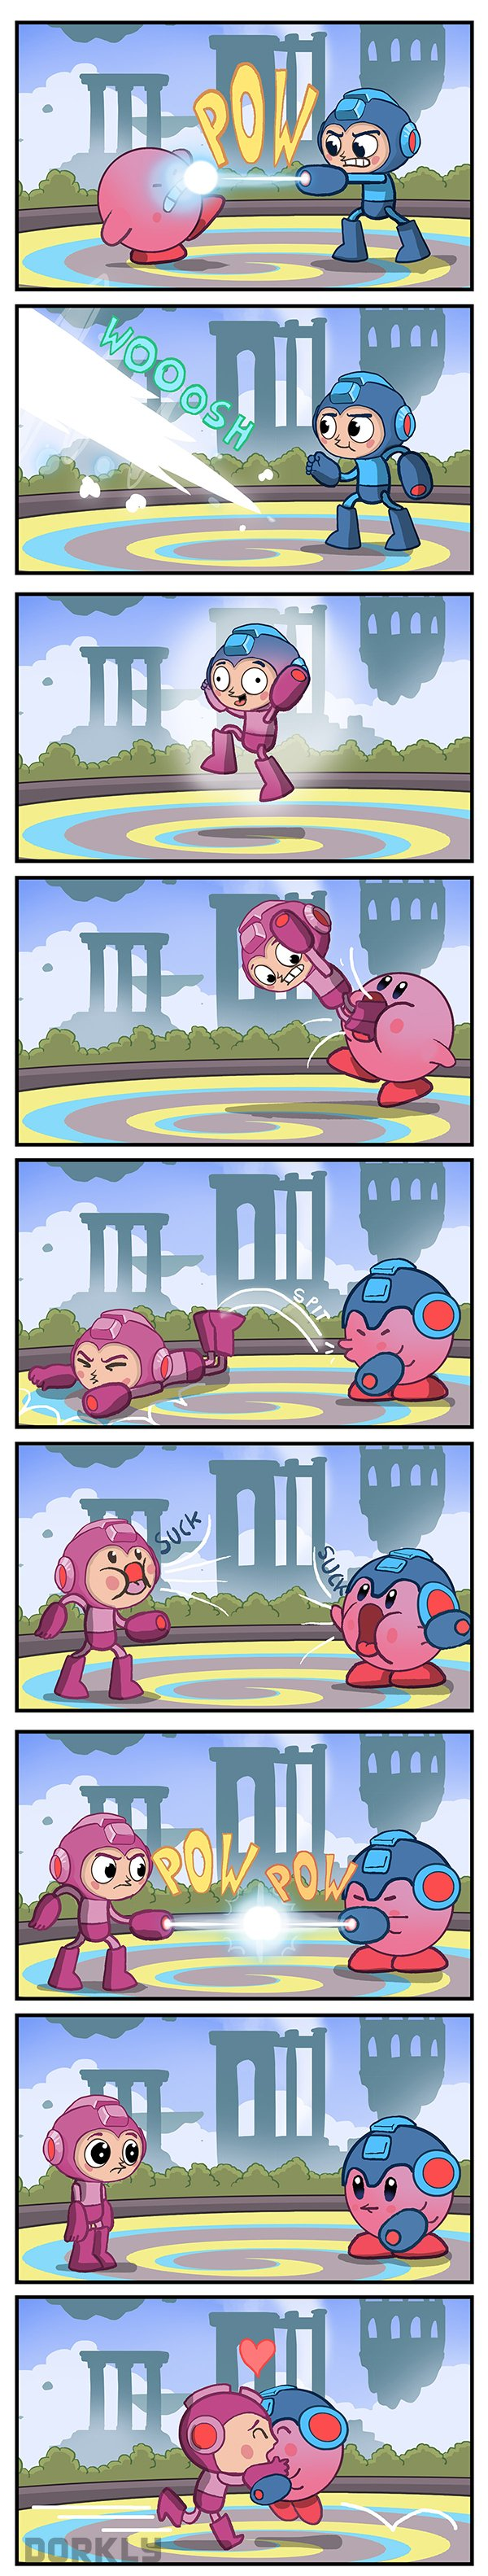 Viñeta Super Smash Bros